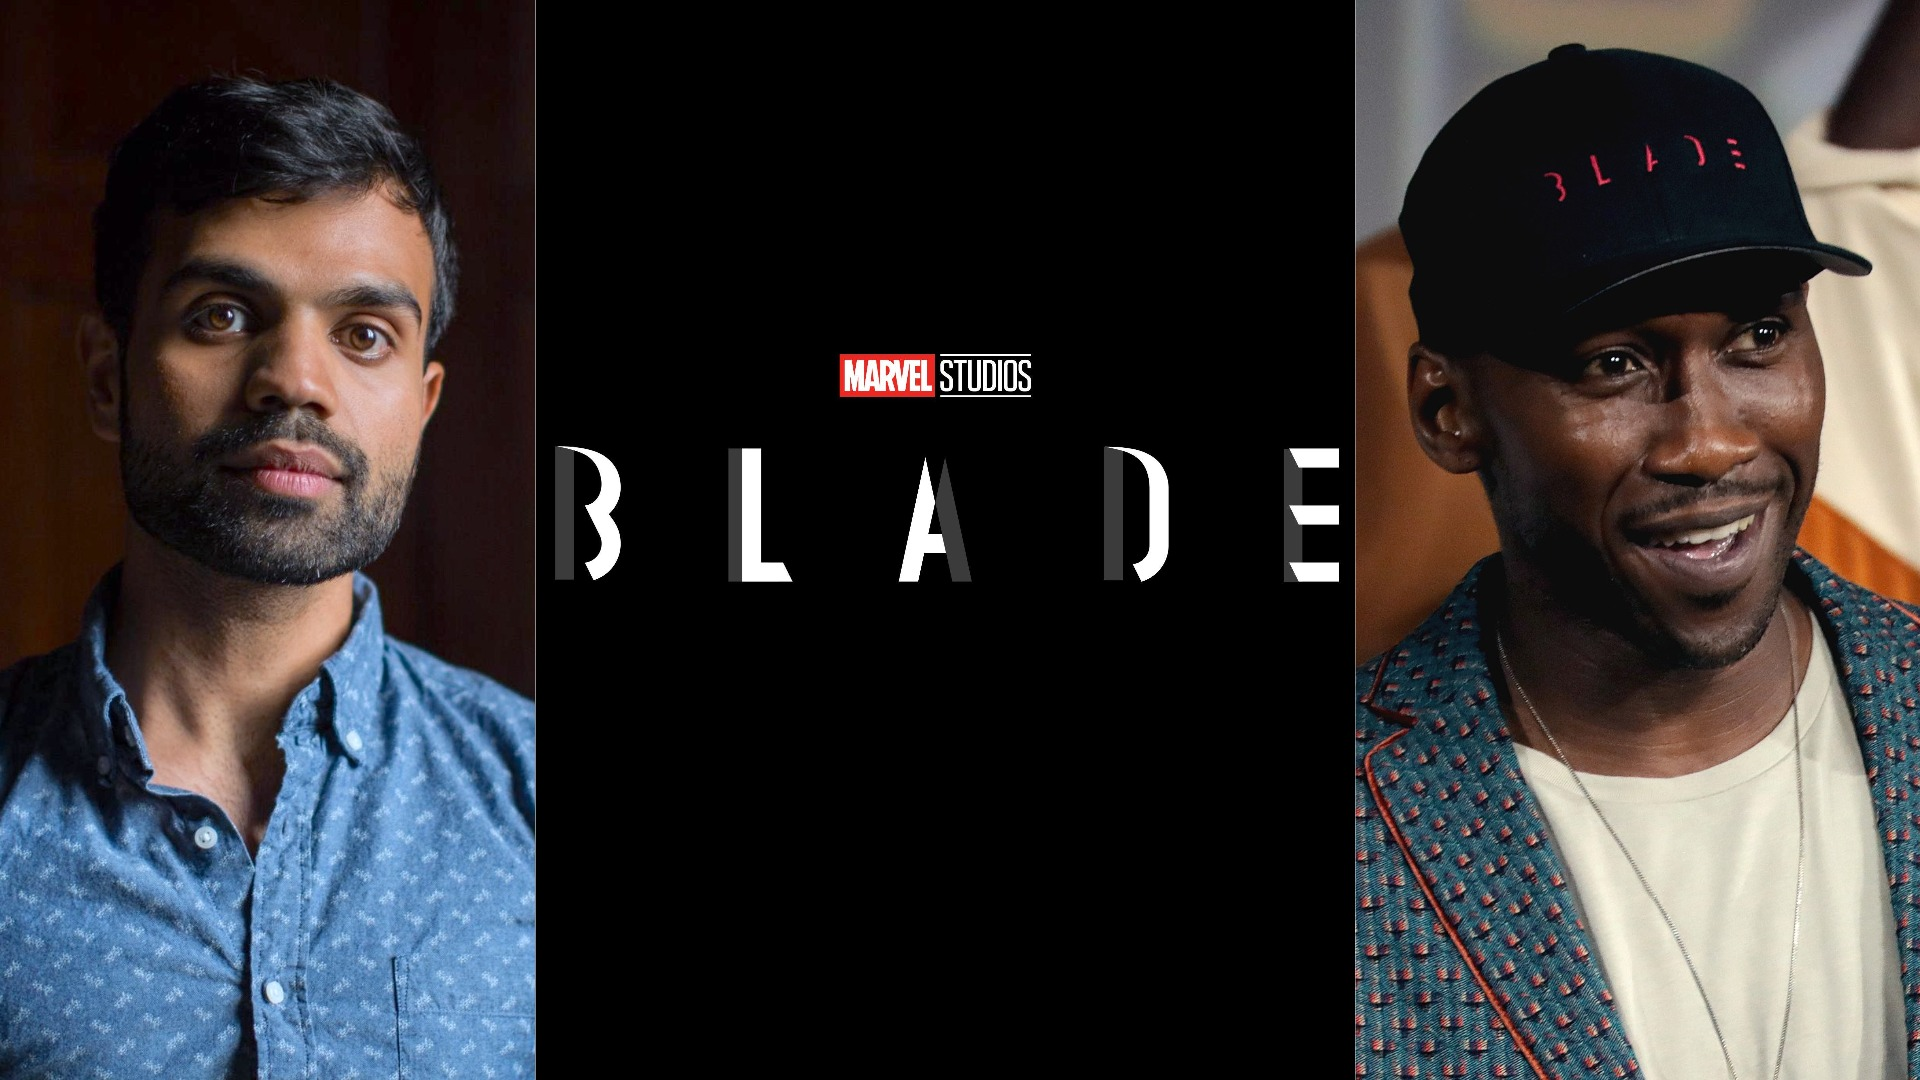 Deadline is exclusively reporting that after months meeting with talent, Marvel Studios have signed Bassam Tariq to direct the upcoming Blade film.